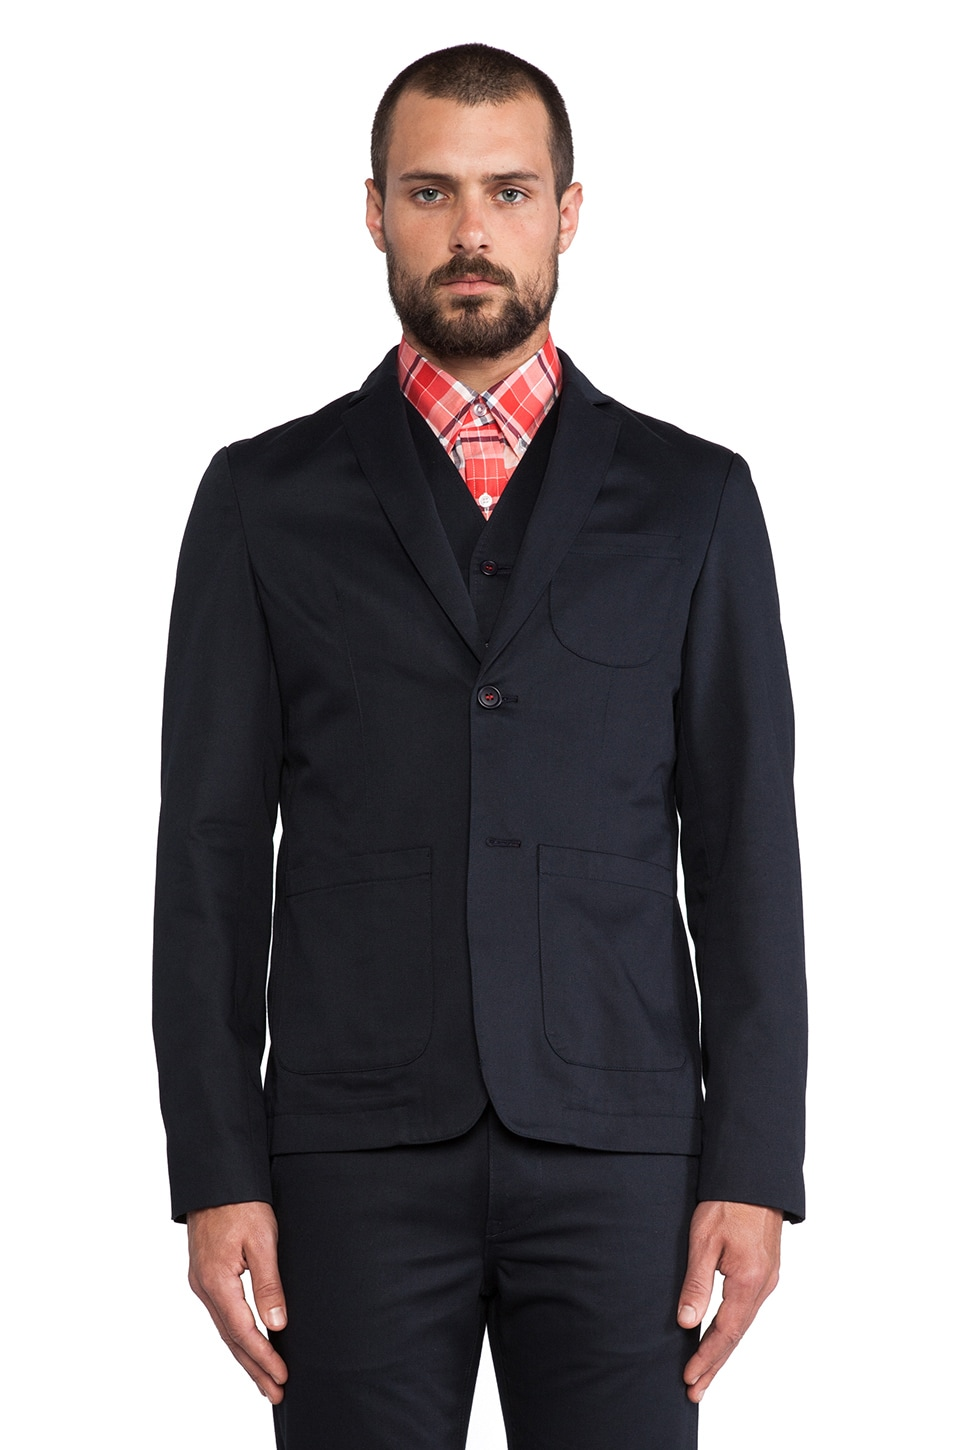 United Stock Dry Goods Twill Blazer in Navy